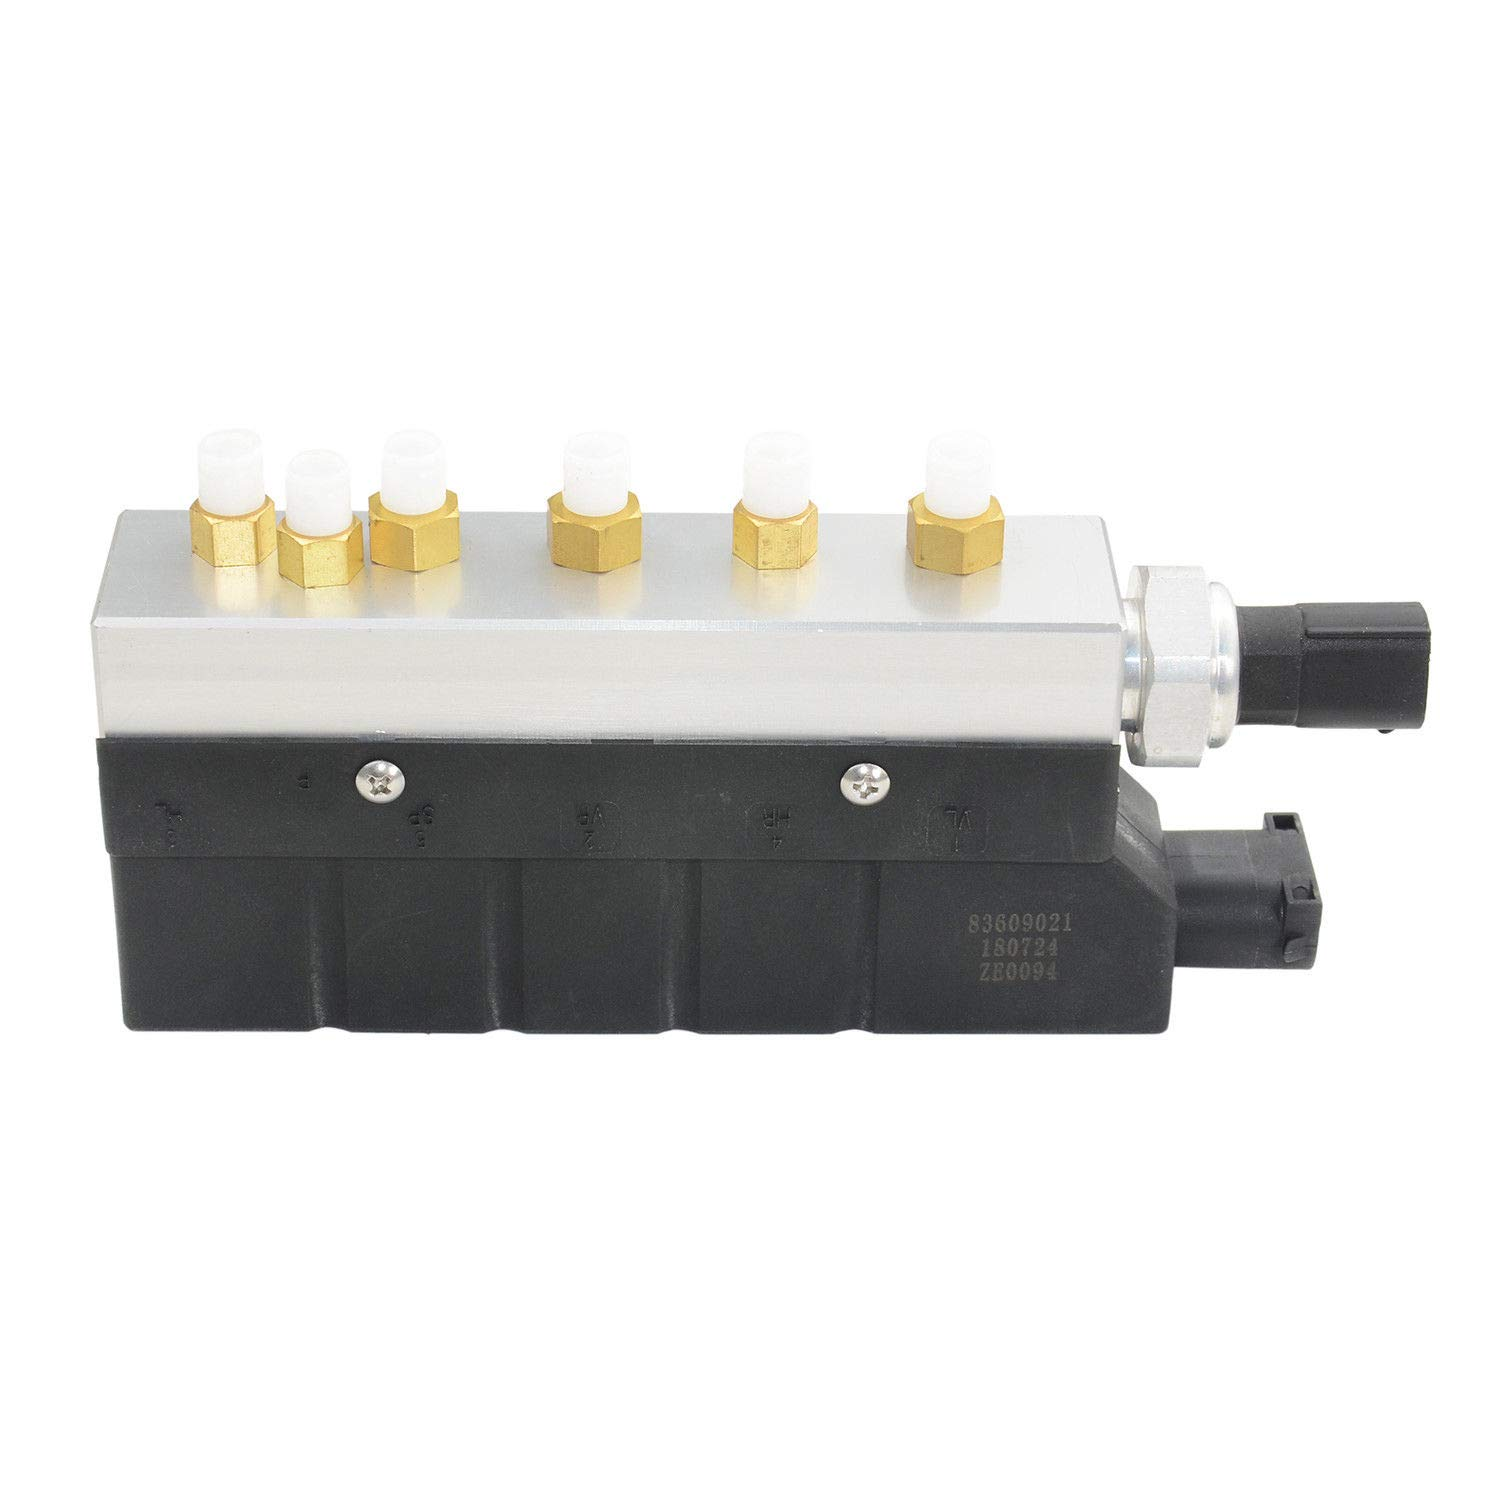 Air Suspension Solenoid Valve Block C2C35166 Compatible For Jaguar XJ6 XJ8 X350 X358 2W933B486AA